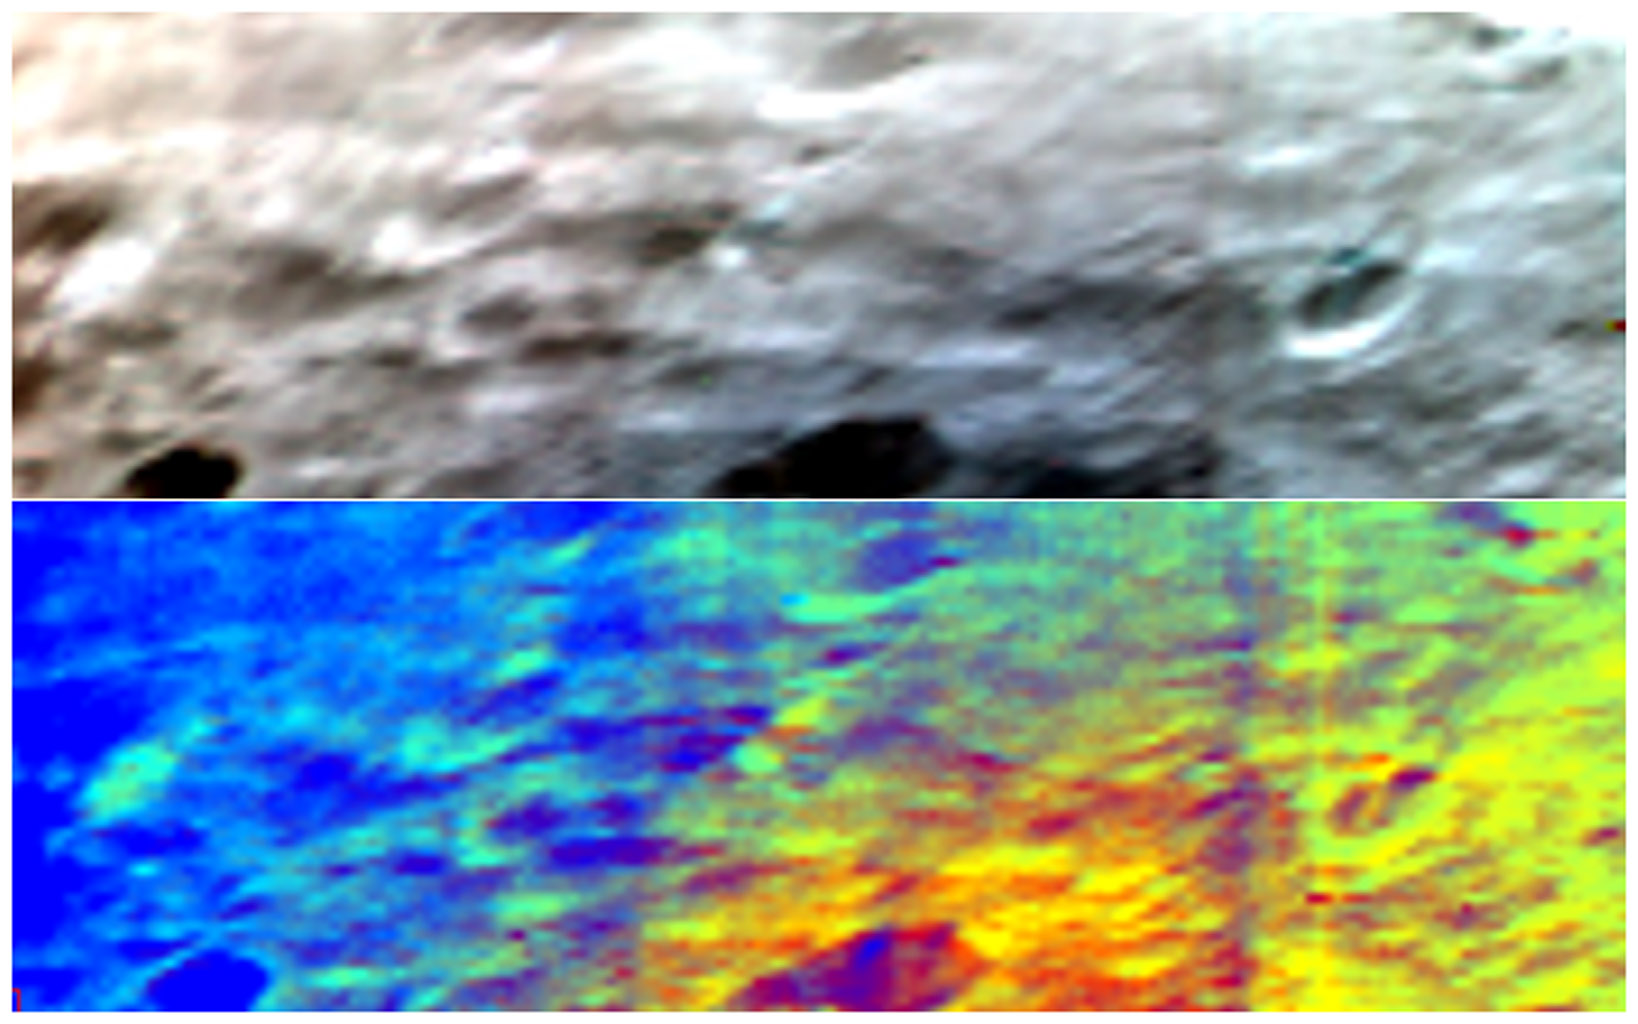 NASA's Dawn spacecraft obtained these images with its visible and infrared instrument of asteroid Vesta. The top image is a simulated true-color picture of the asteroid's surface.